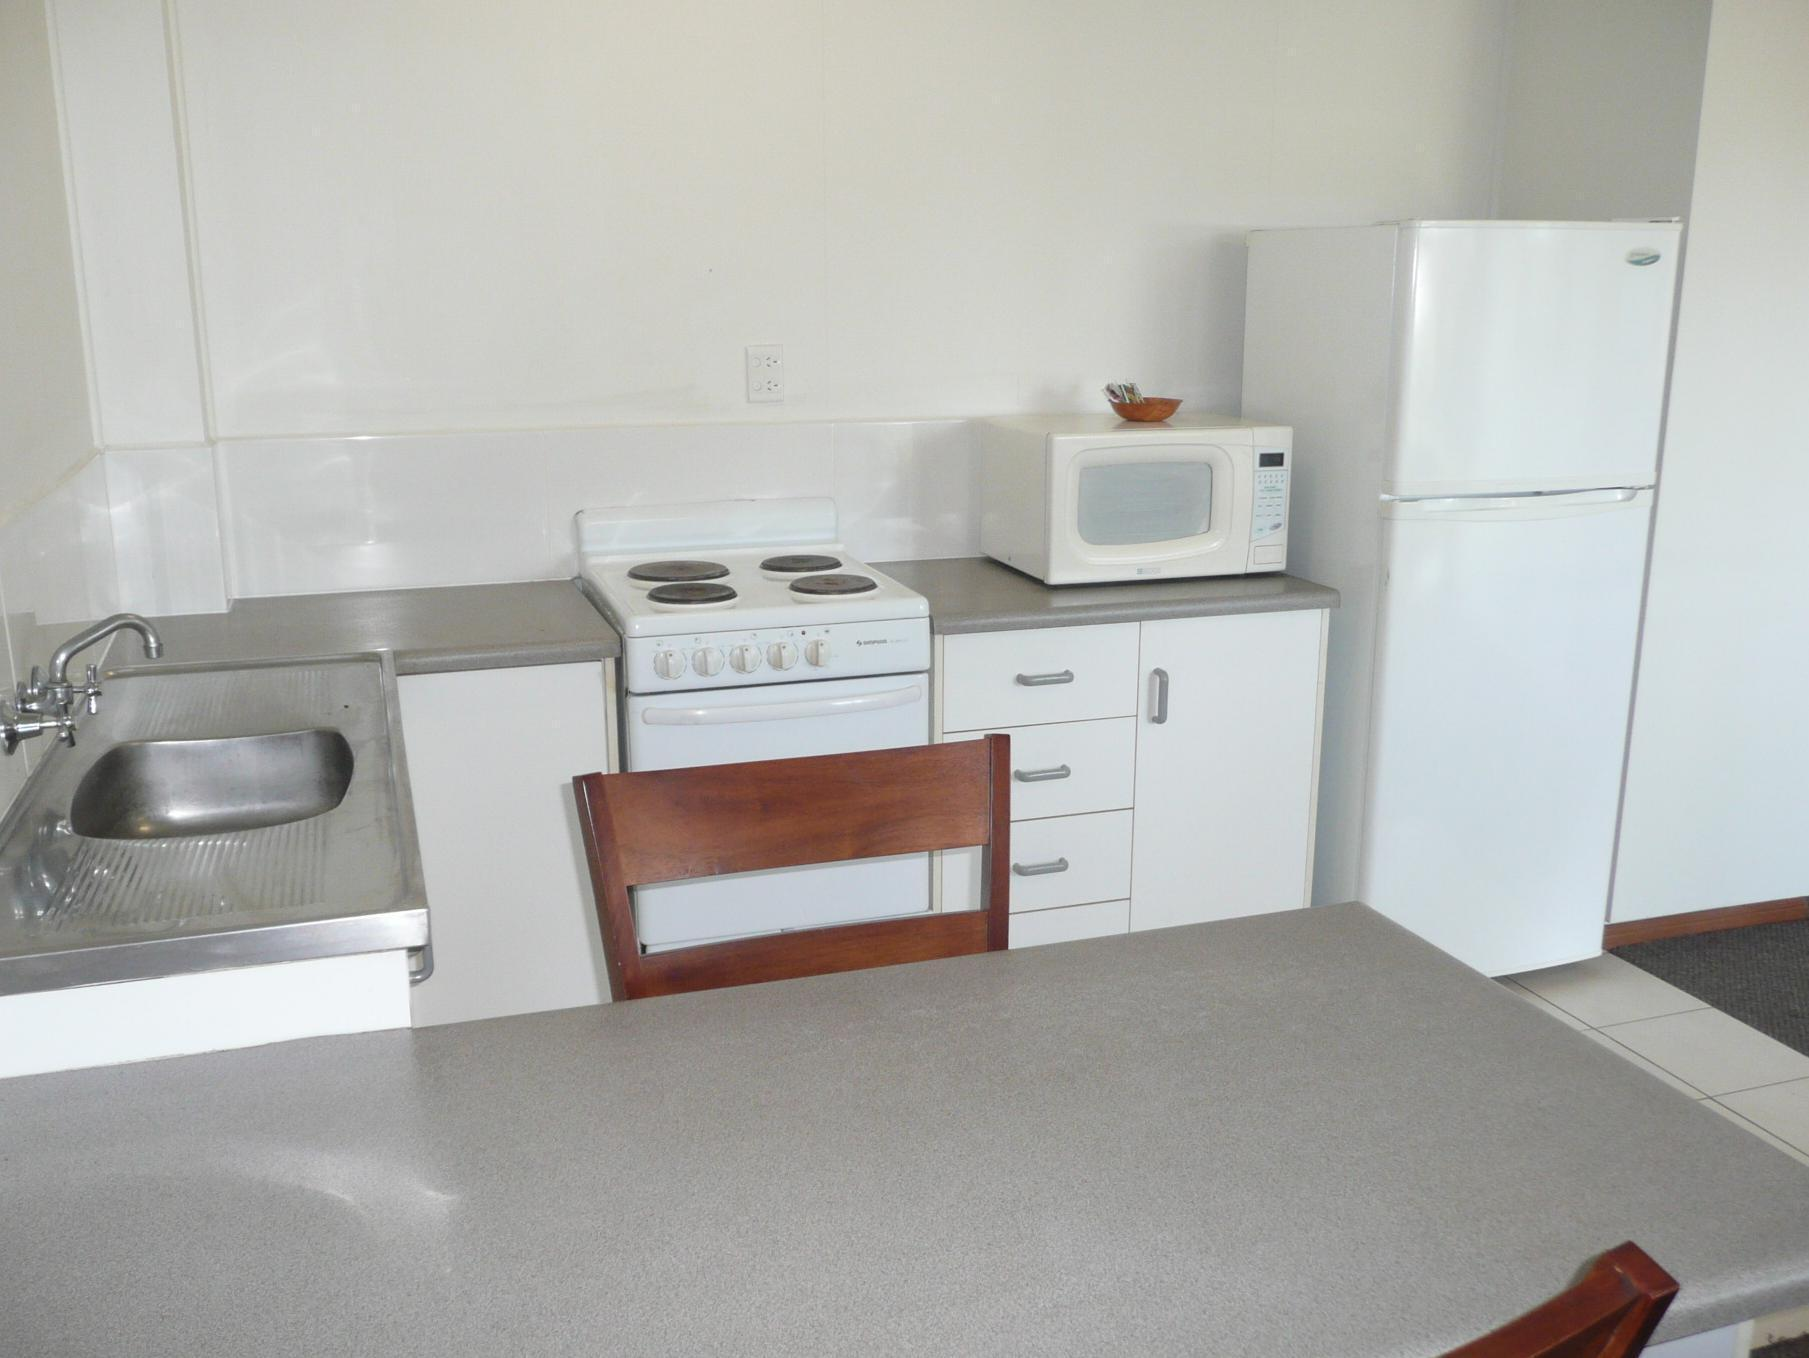 2 soverom leilighet - 2 voksne (2-Bedroom Apartment - 2 Adults)